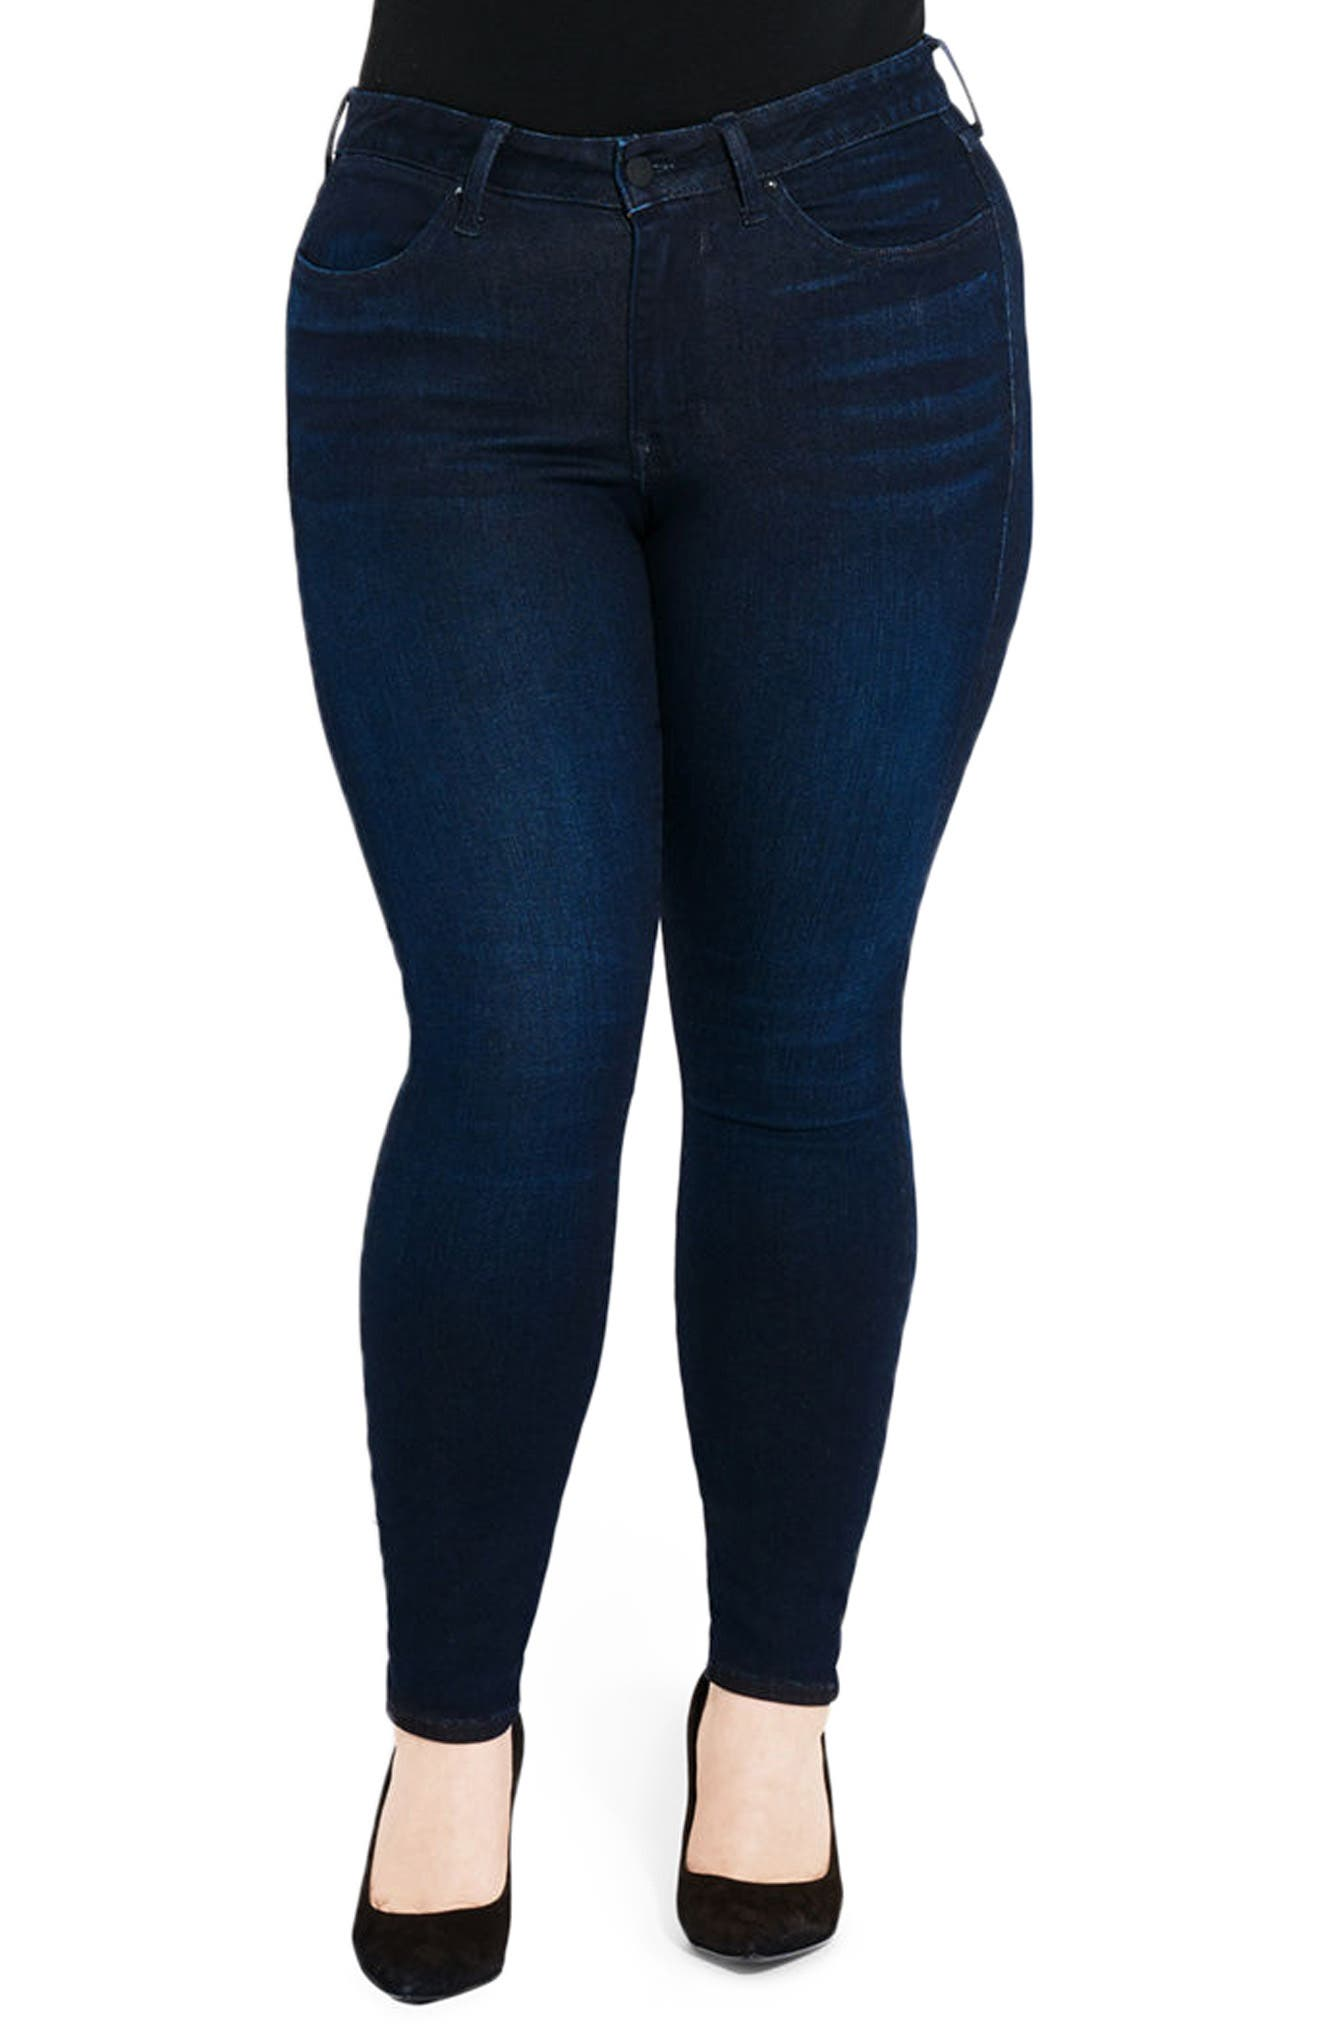 Main Image - AYR The One Love High Waist Skinny Jeans (Jac's Jean) (Plus Size)